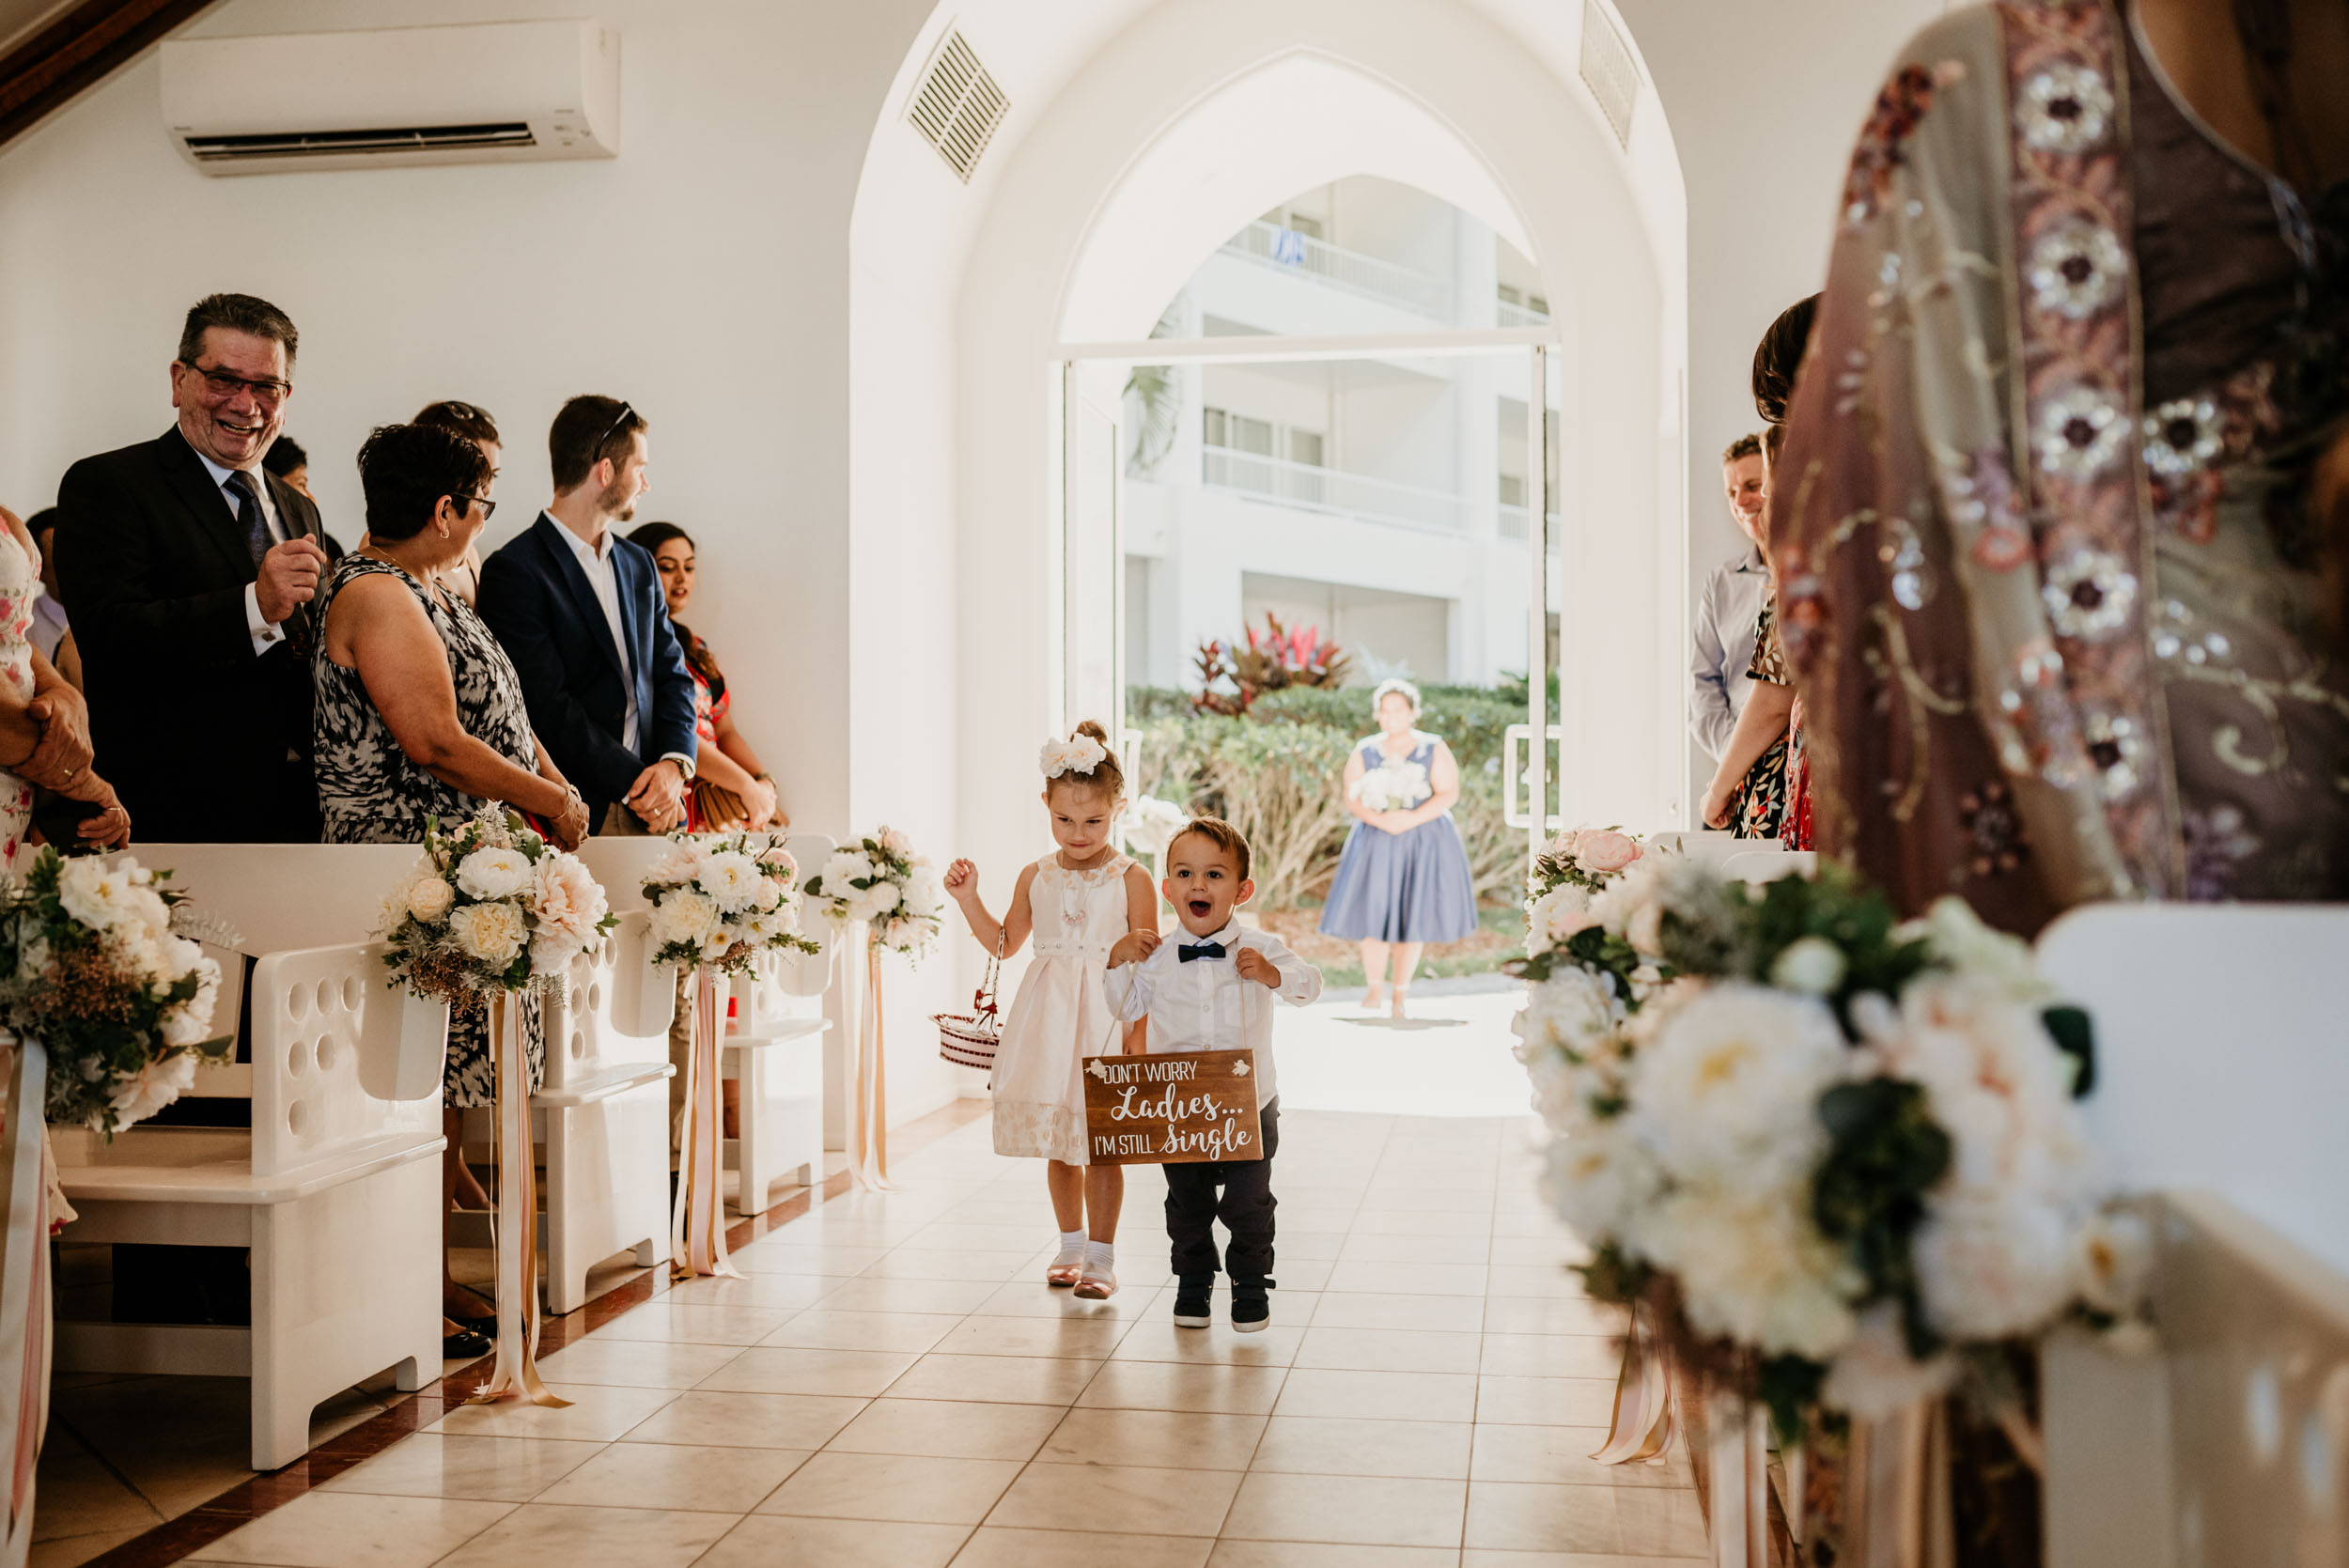 The Raw Photographer - Cairns Wedding Photographer - Palm Cove Ceremony - Pullman Reception - Dress White House Boutique-24.jpg